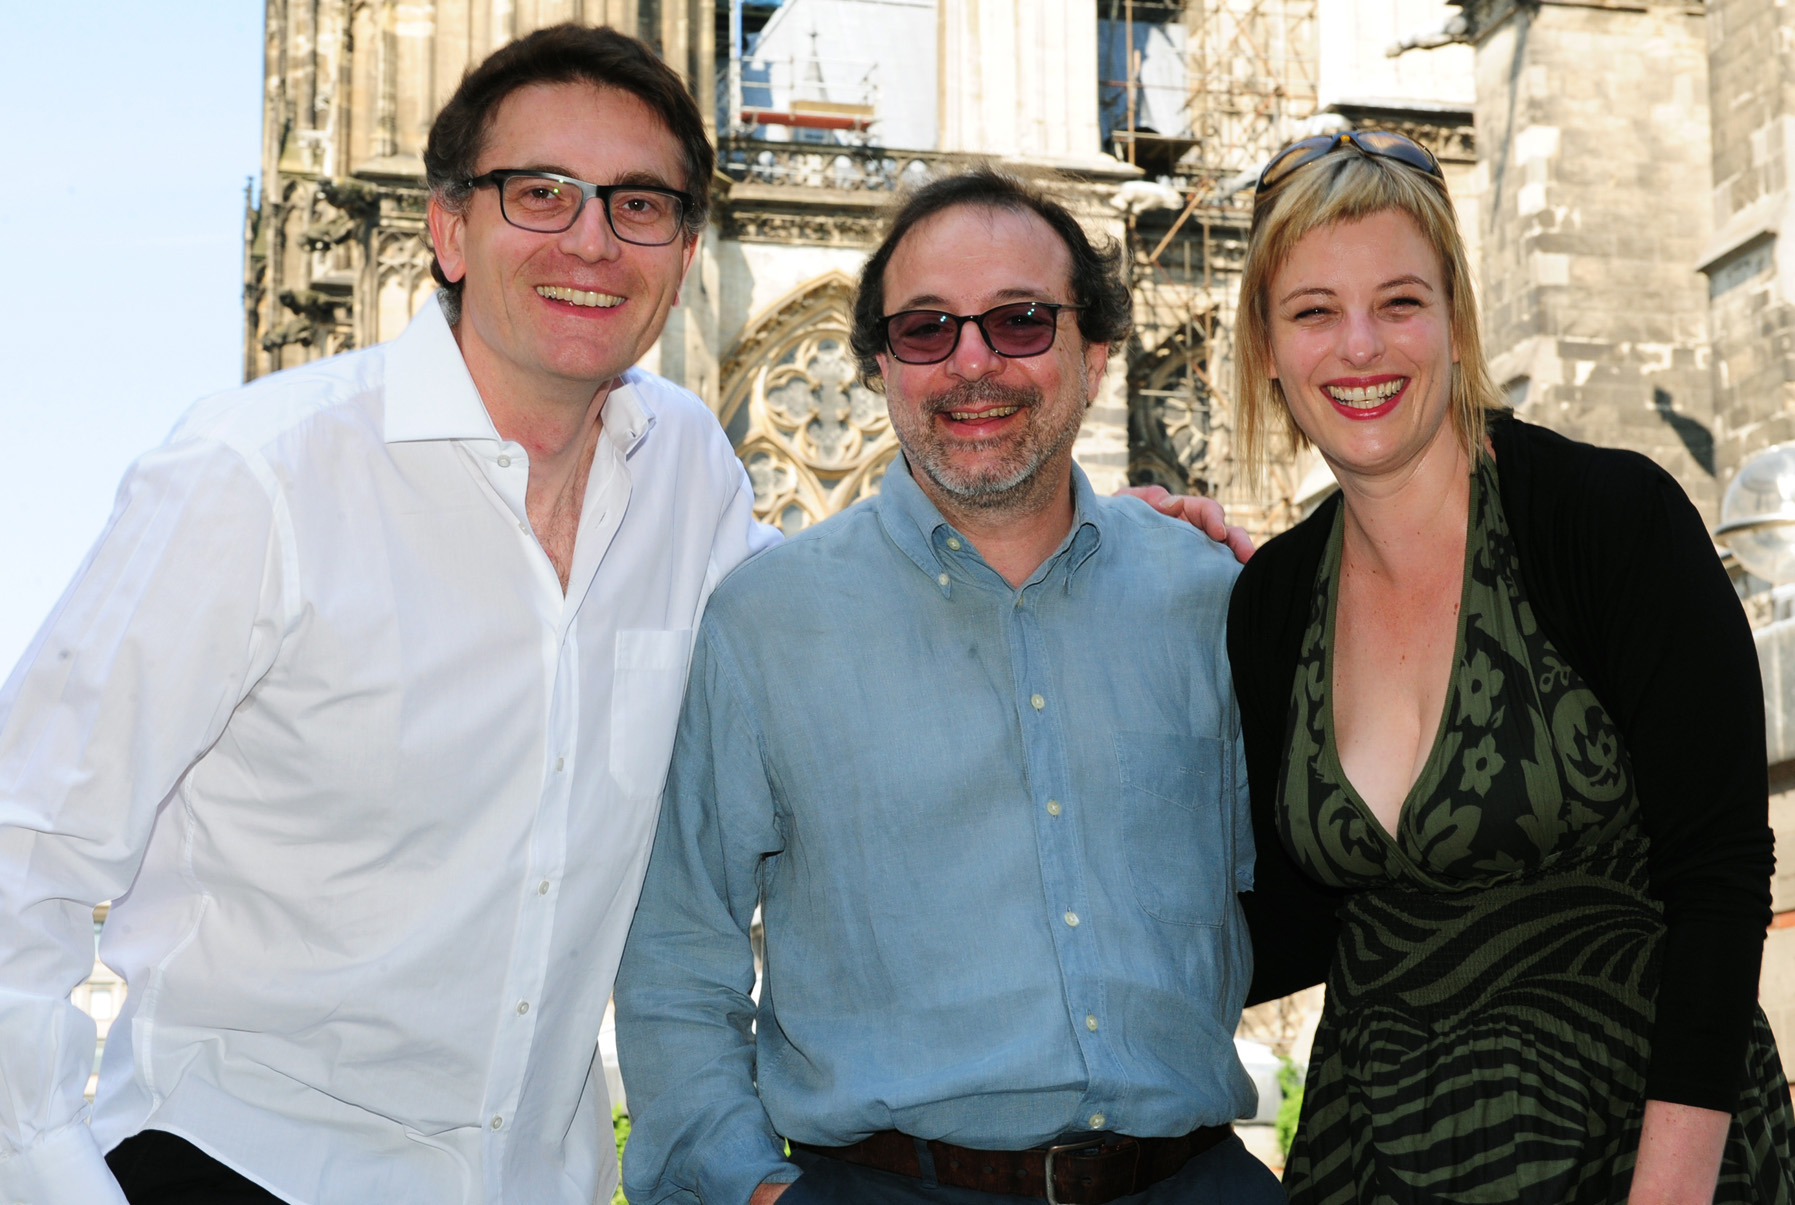 Producers Johannes Rexin and Bettina Brokemper of Heimatfilm with director Semih Kaplanoglu in front of Cologne Cathedral, courtesy Heike Herbertz/Filmstiftung NRW